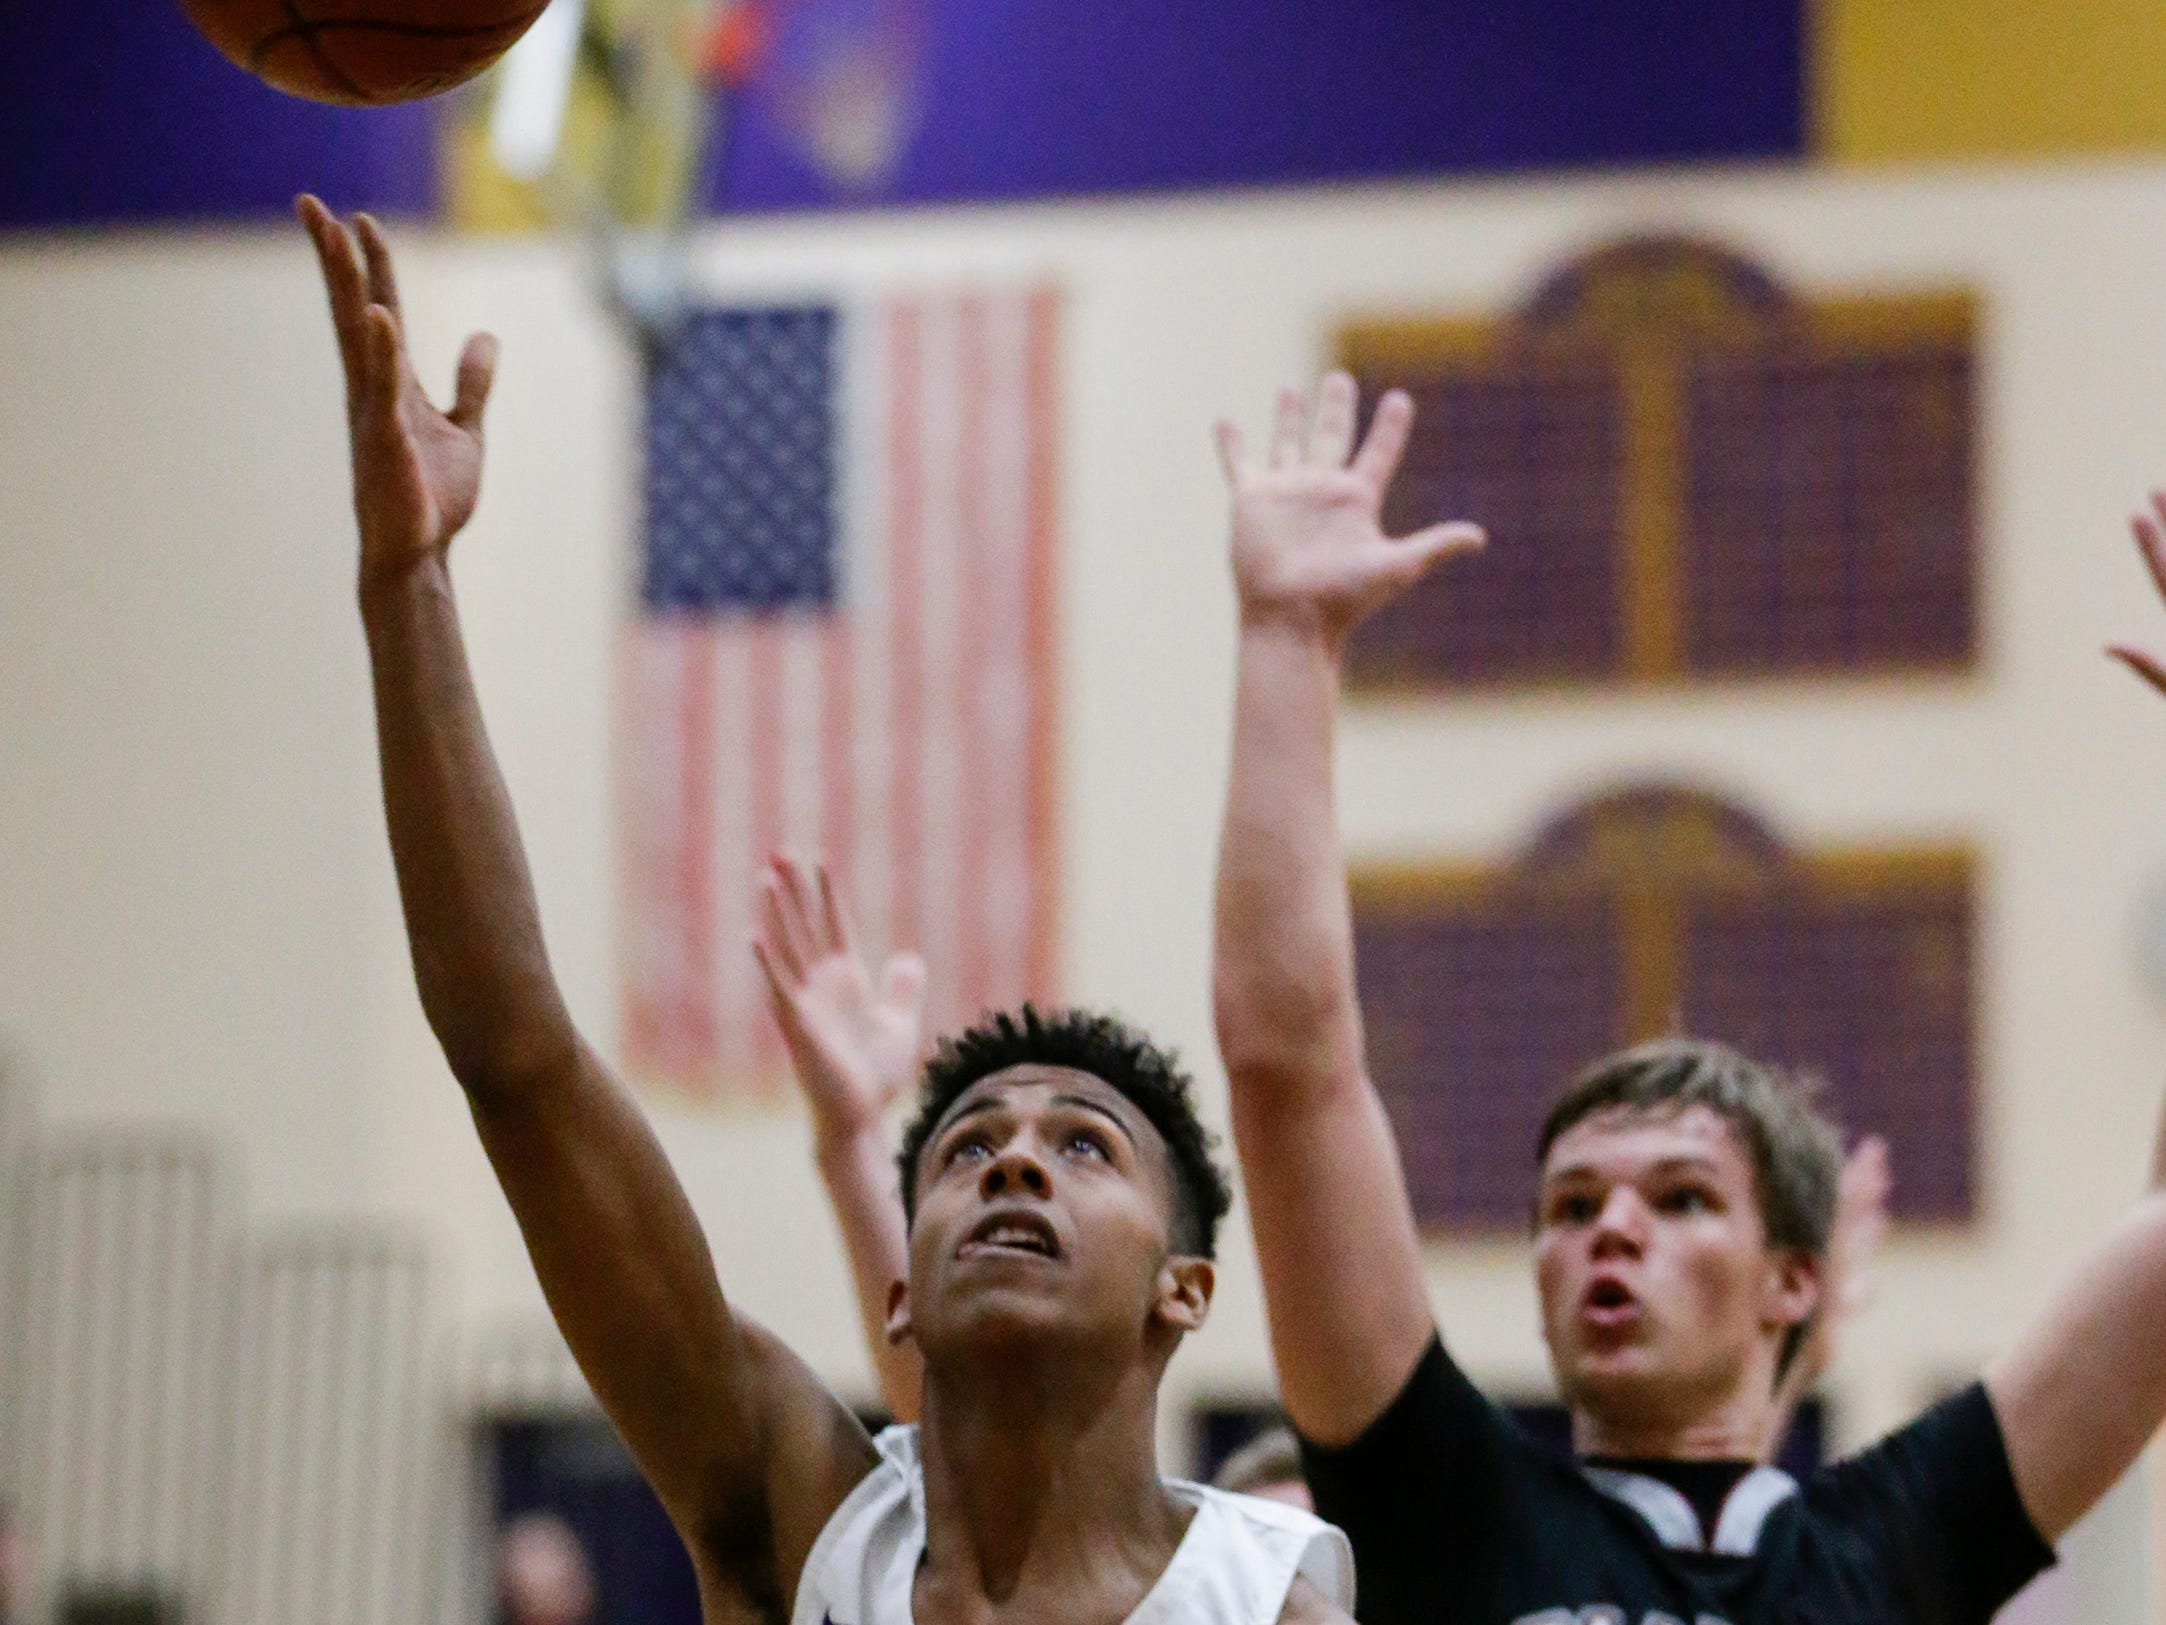 Two Rivers' Isaac Coronado shoots a layup against Green Bay NEW Lutheran at Two Rivers High School Tuesday, January 8, 2019, in Two Rivers, Wis. Joshua Clark/USA TODAY NETWORK-Wisconsin